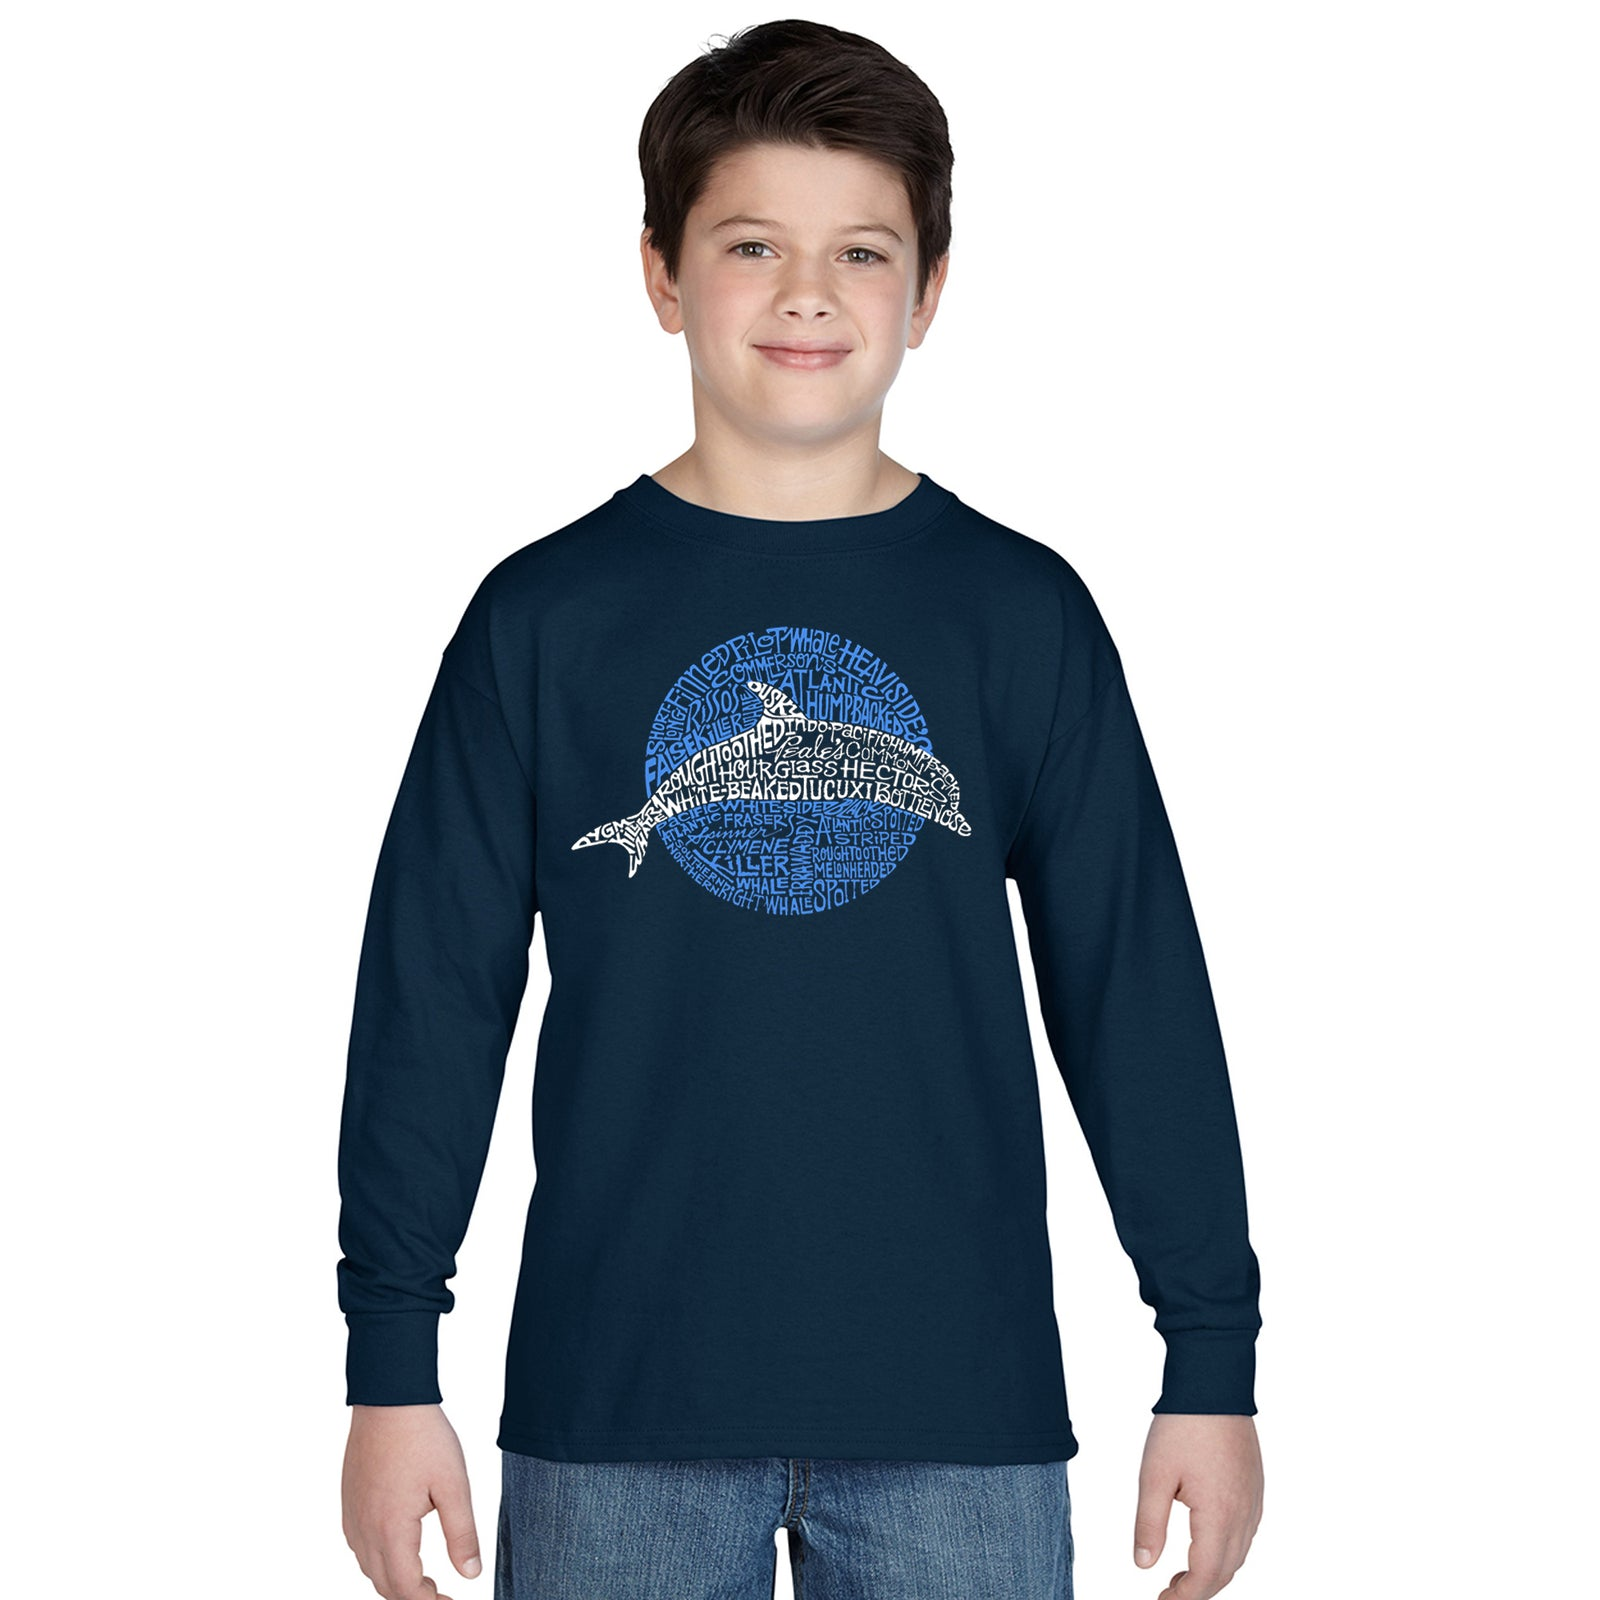 Boy's Word Art Long Sleeve - Species of Dolphin